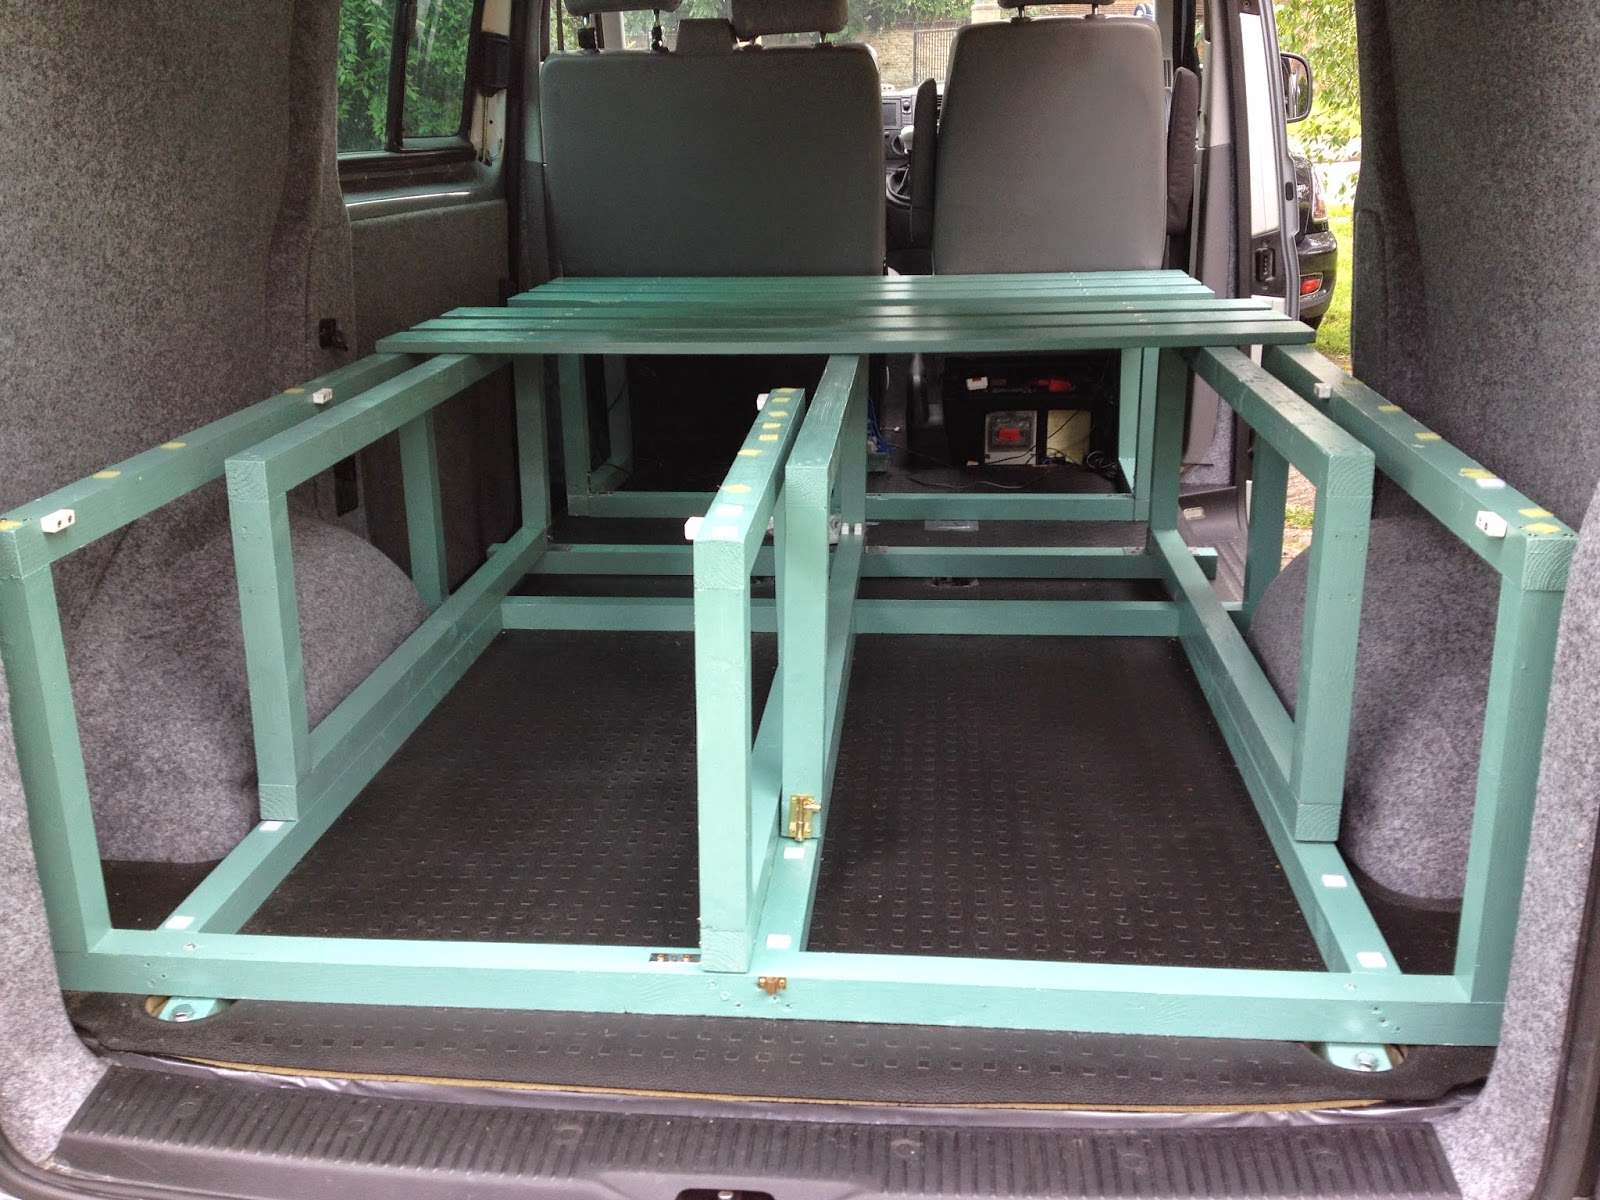 Bed Frame Construction Vw T5 Van Conversion